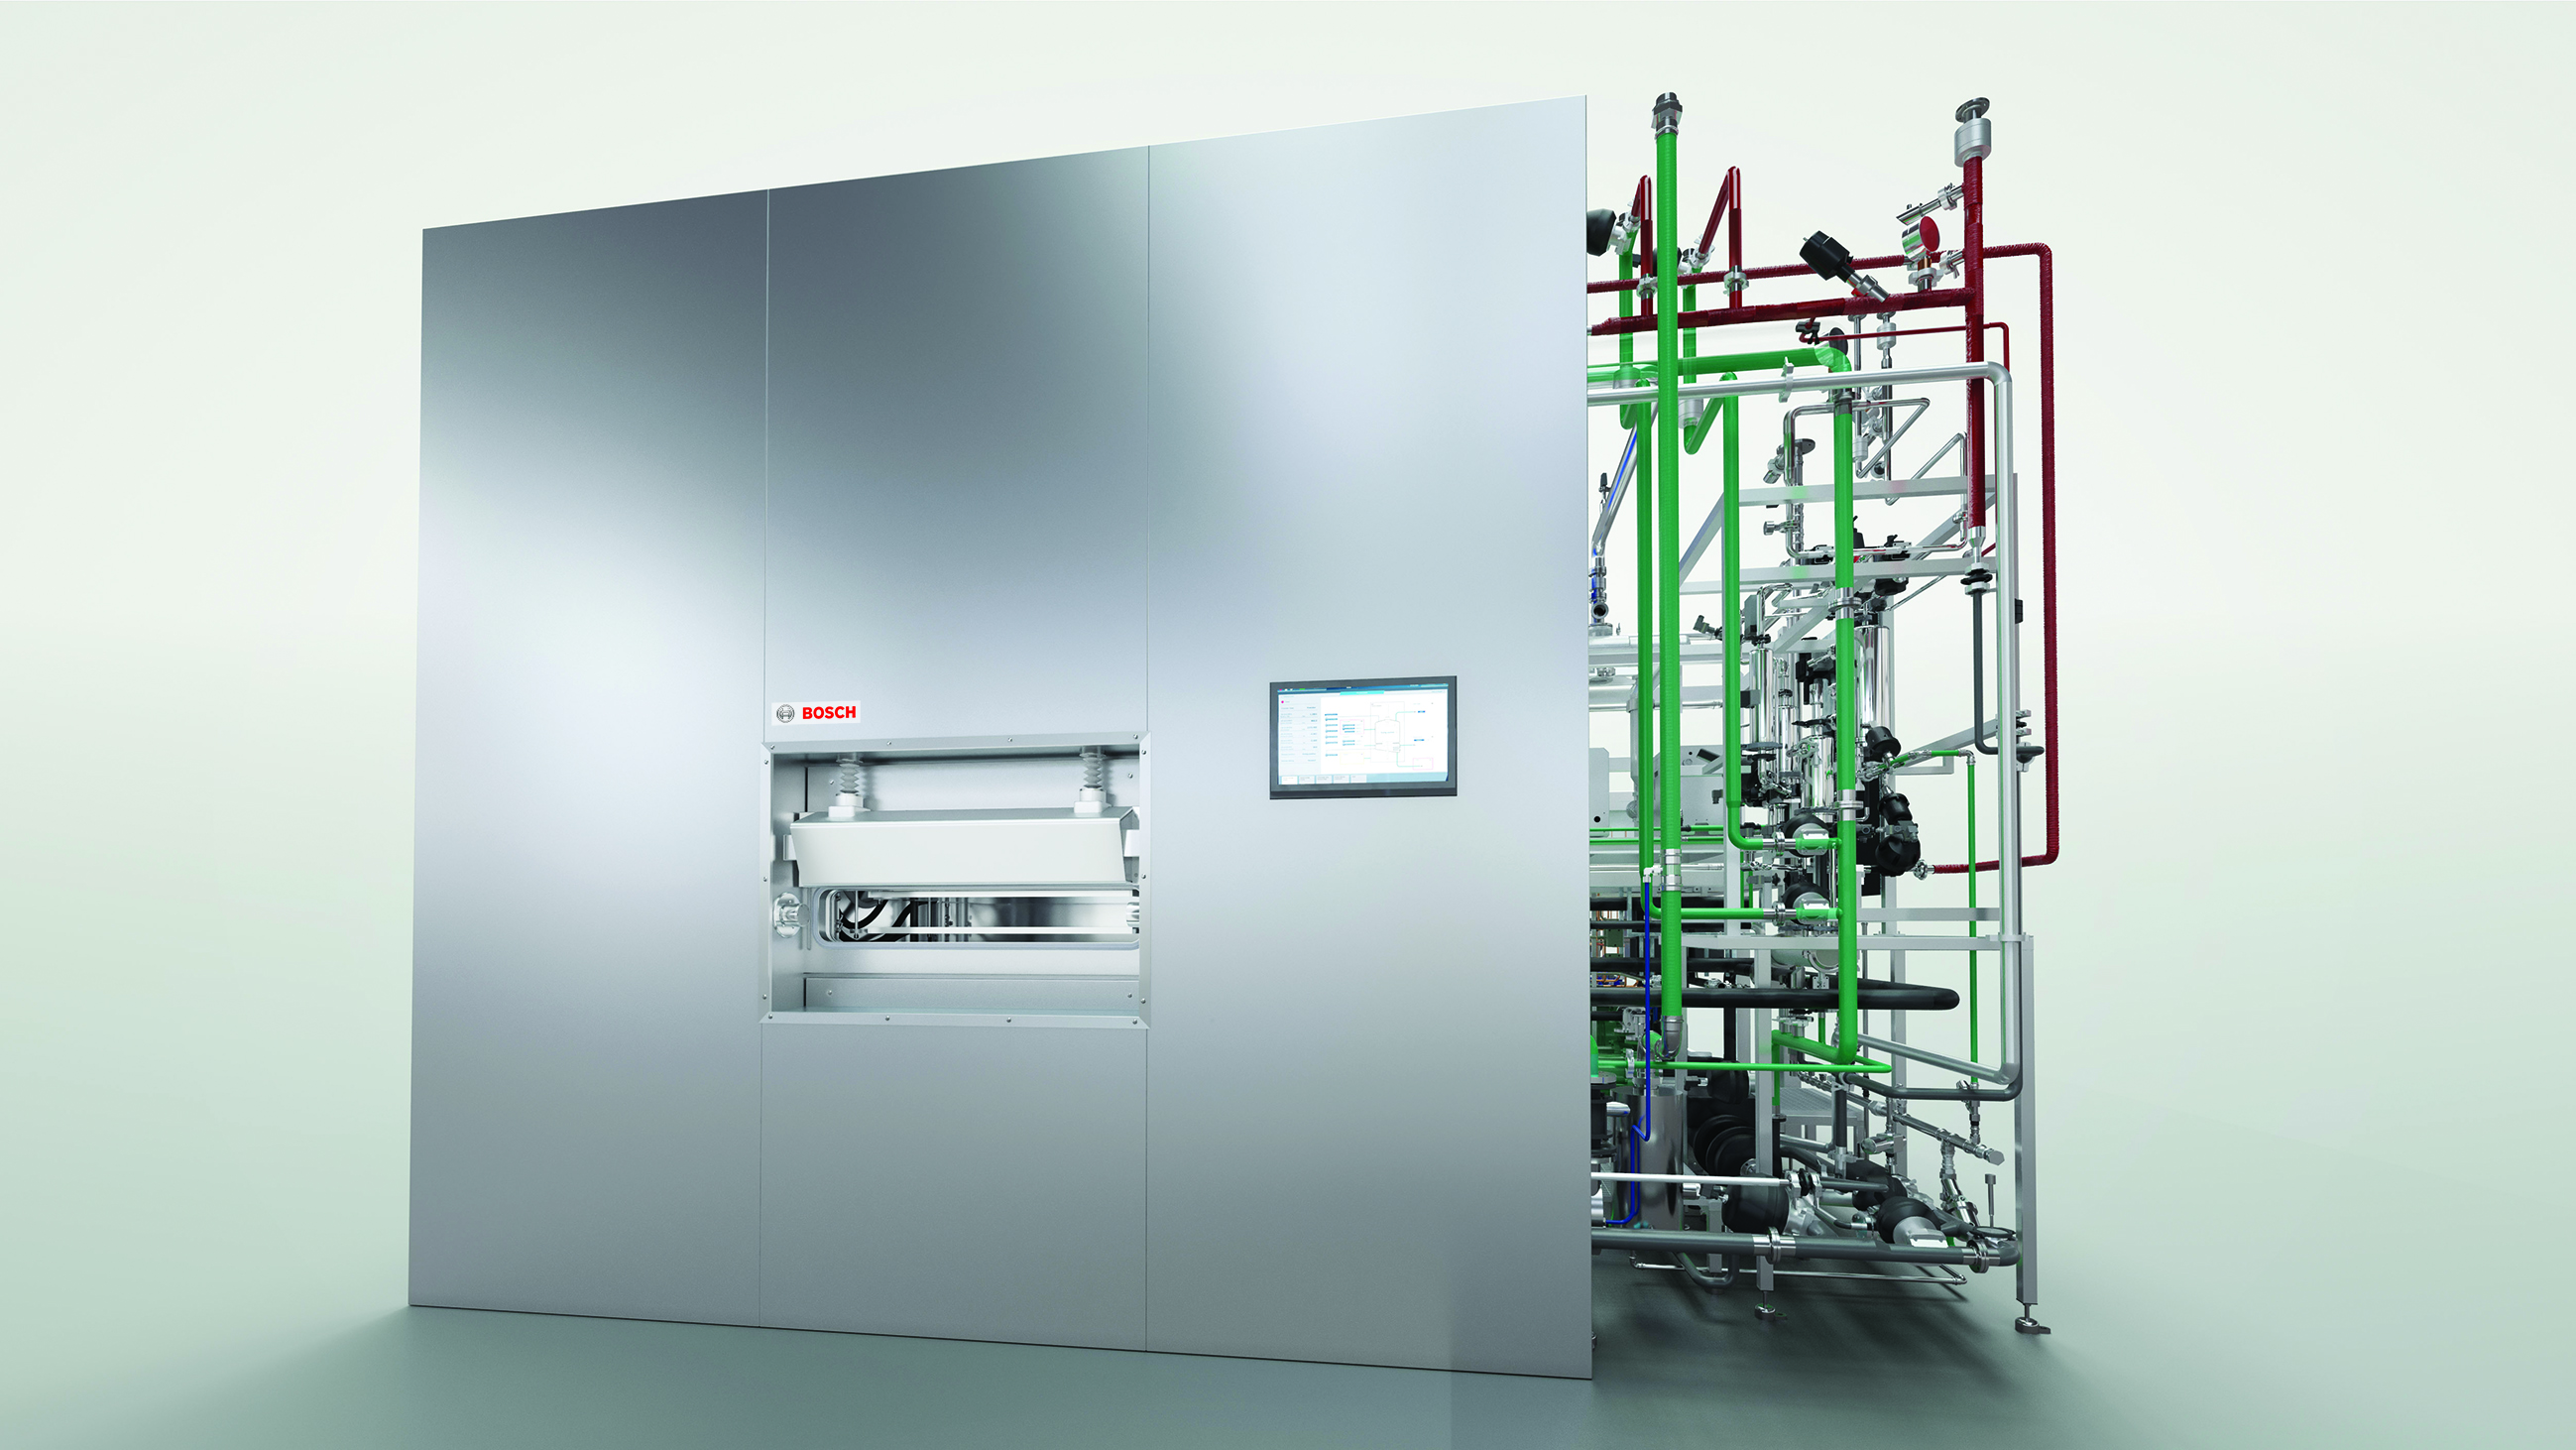 Premiere at Achema: new freeze dryer from Bosch - Bosch